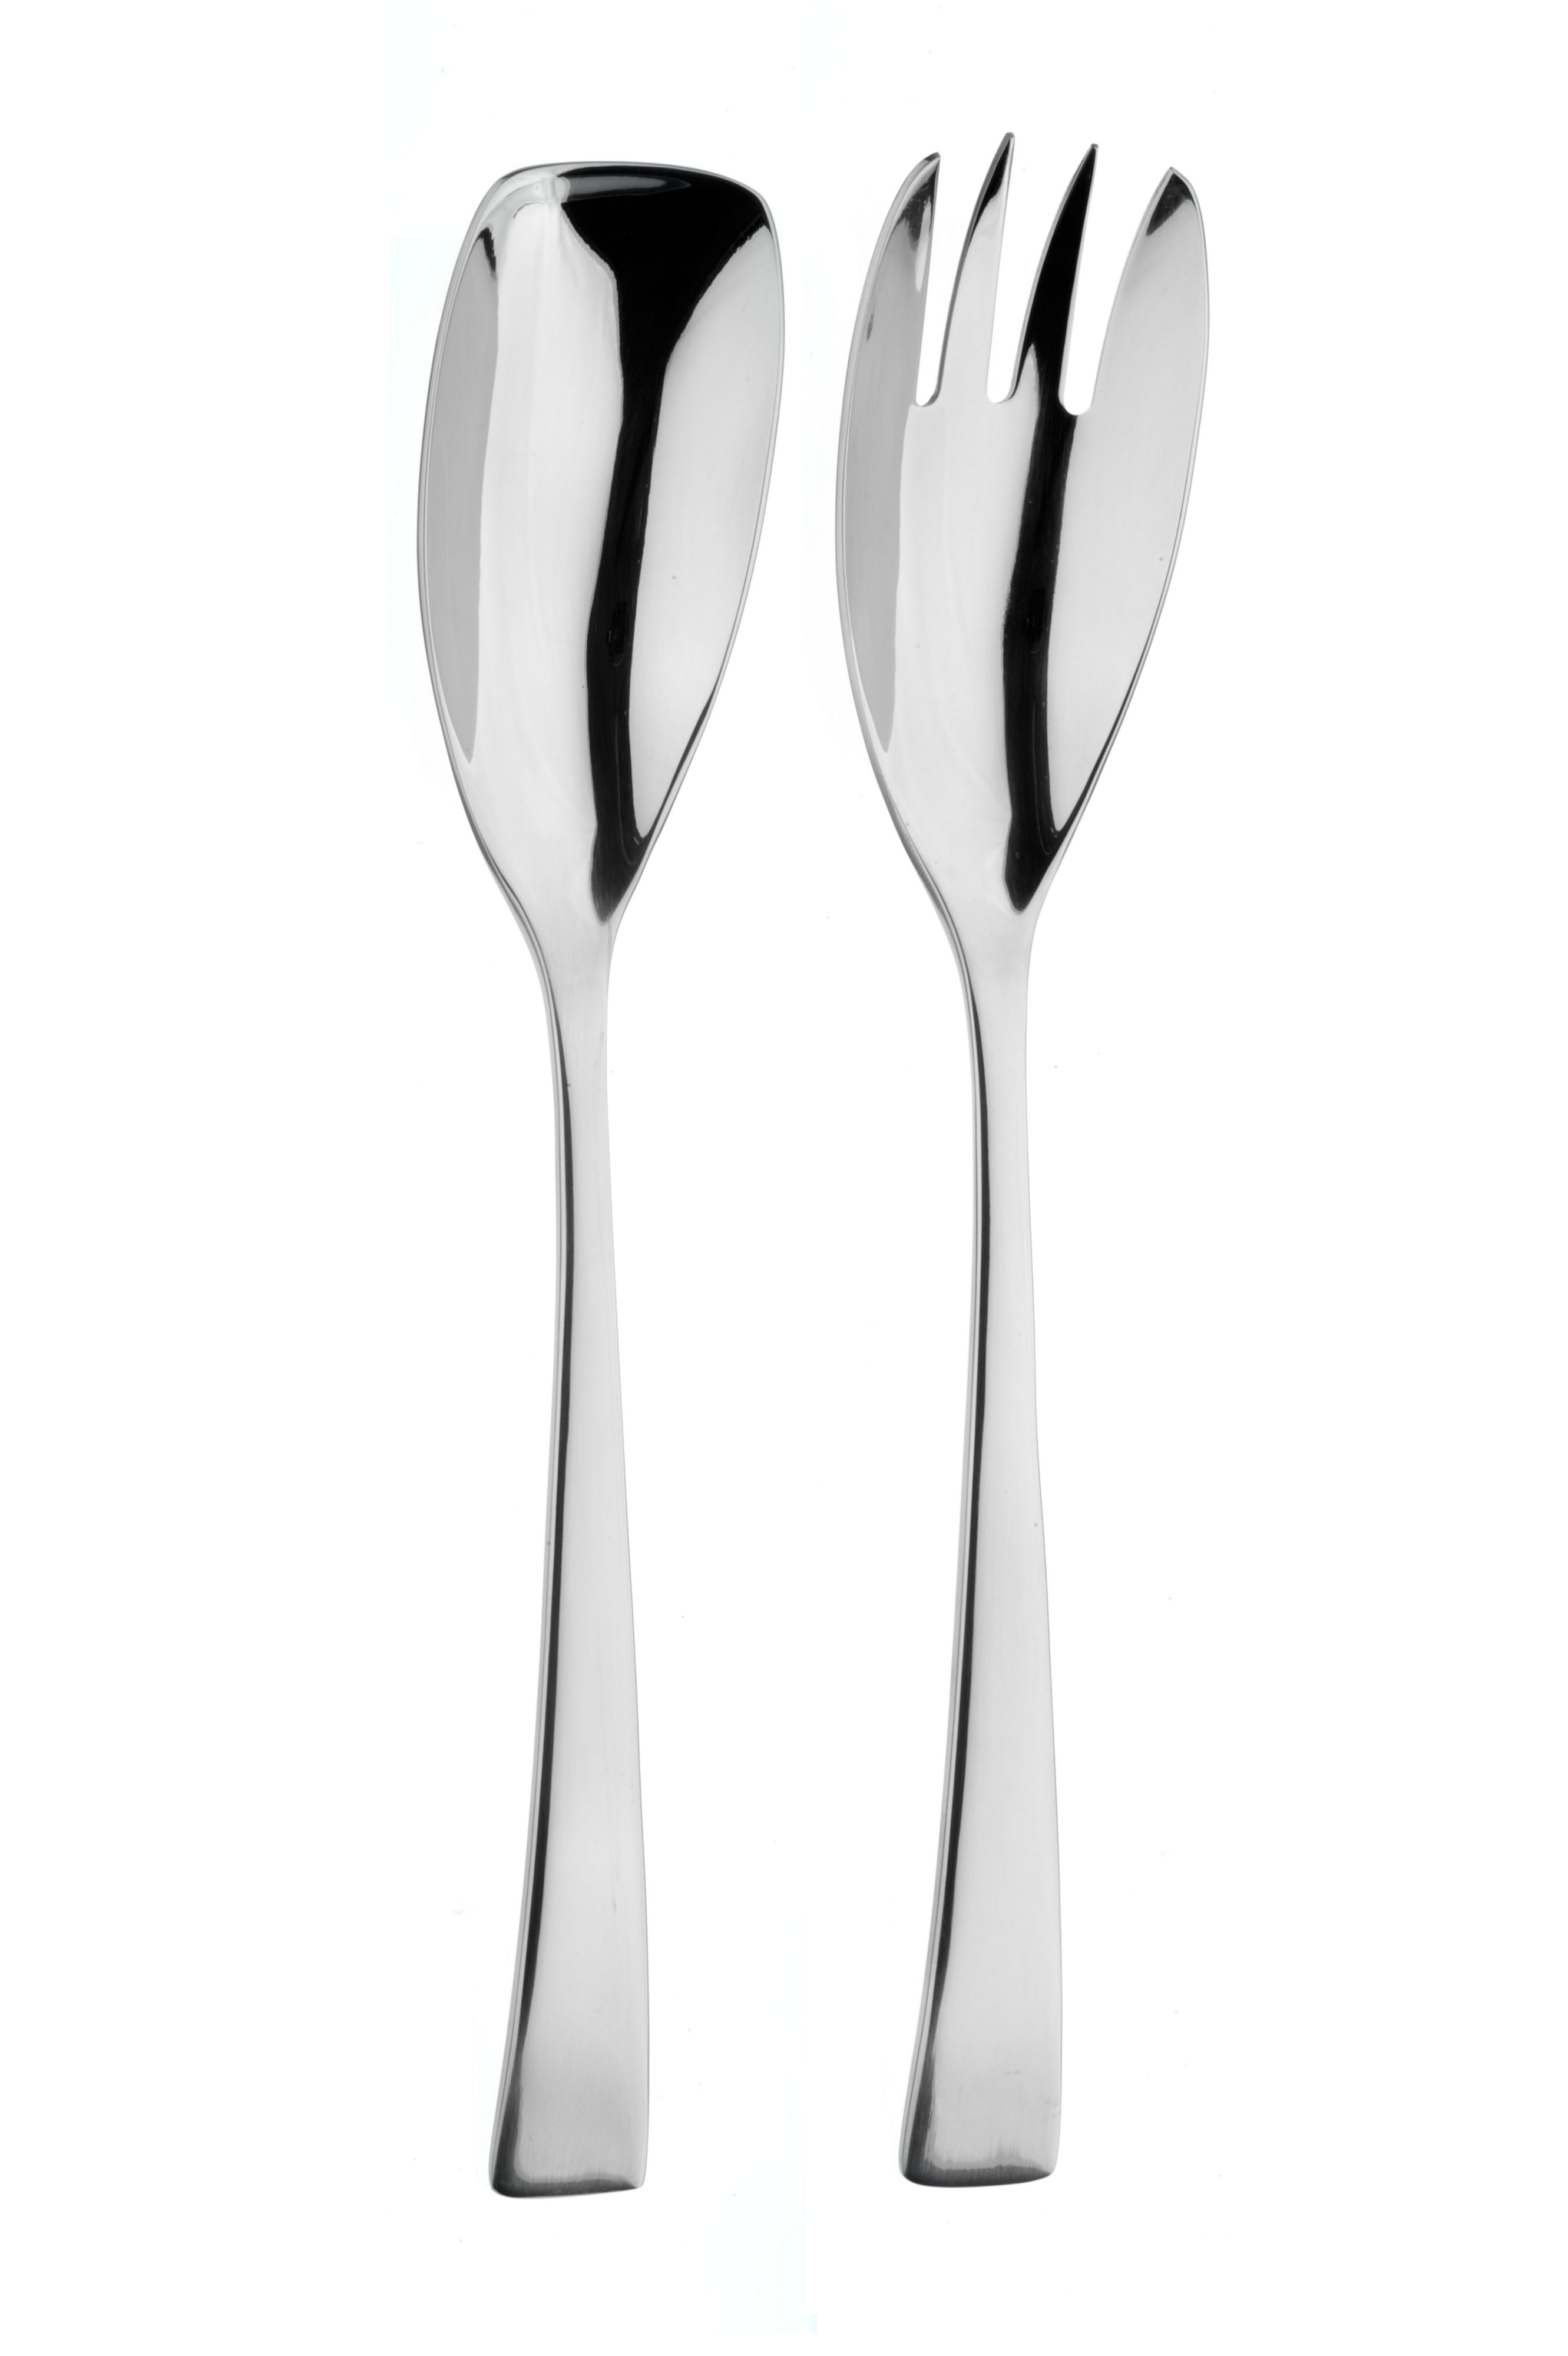 Pair of salad servers